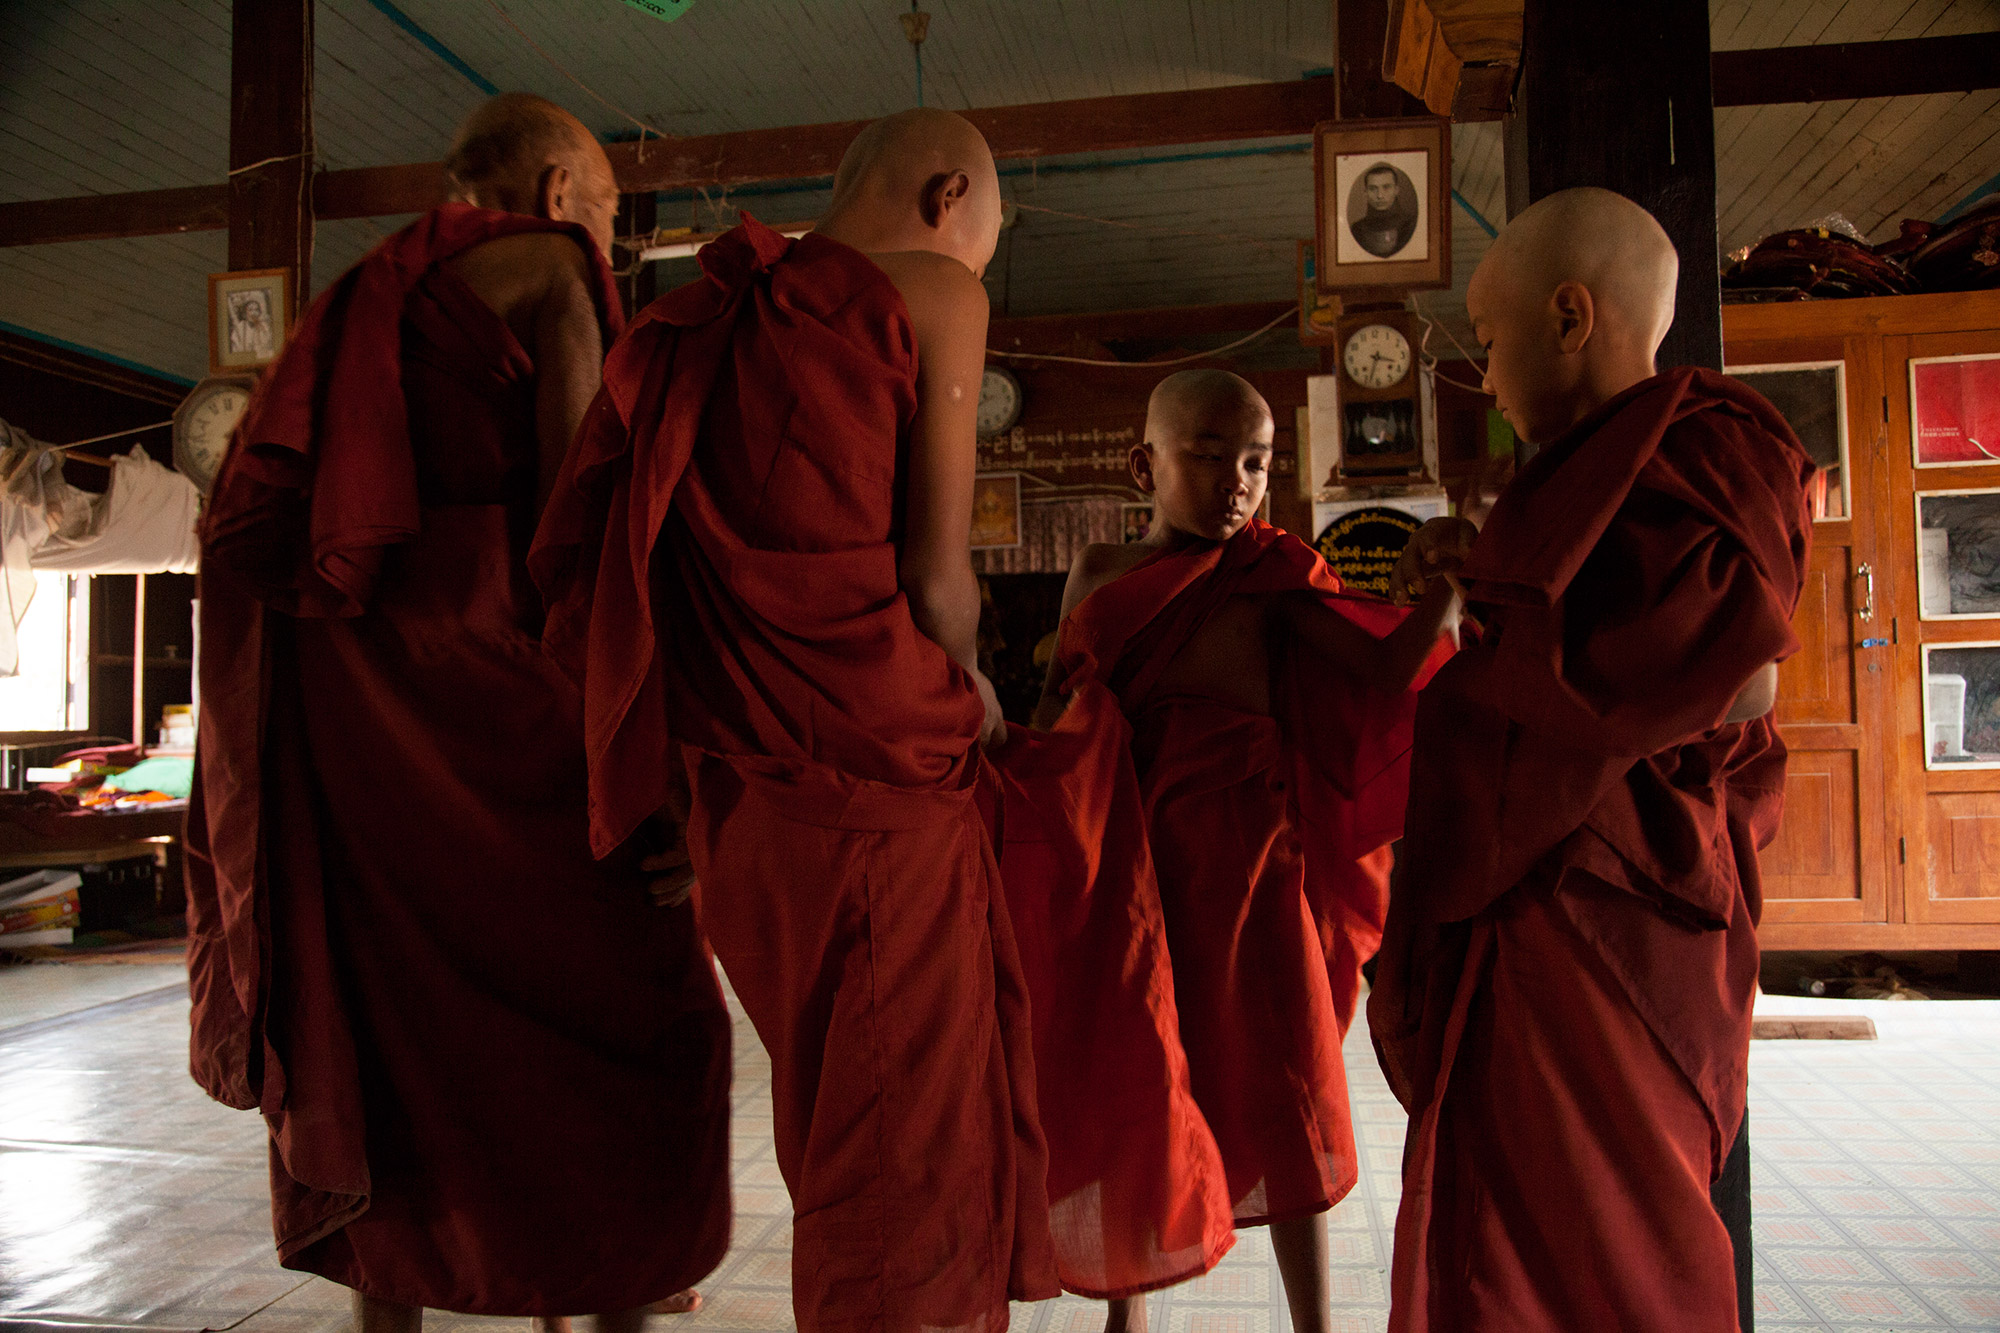 Novice Monks in New Robes